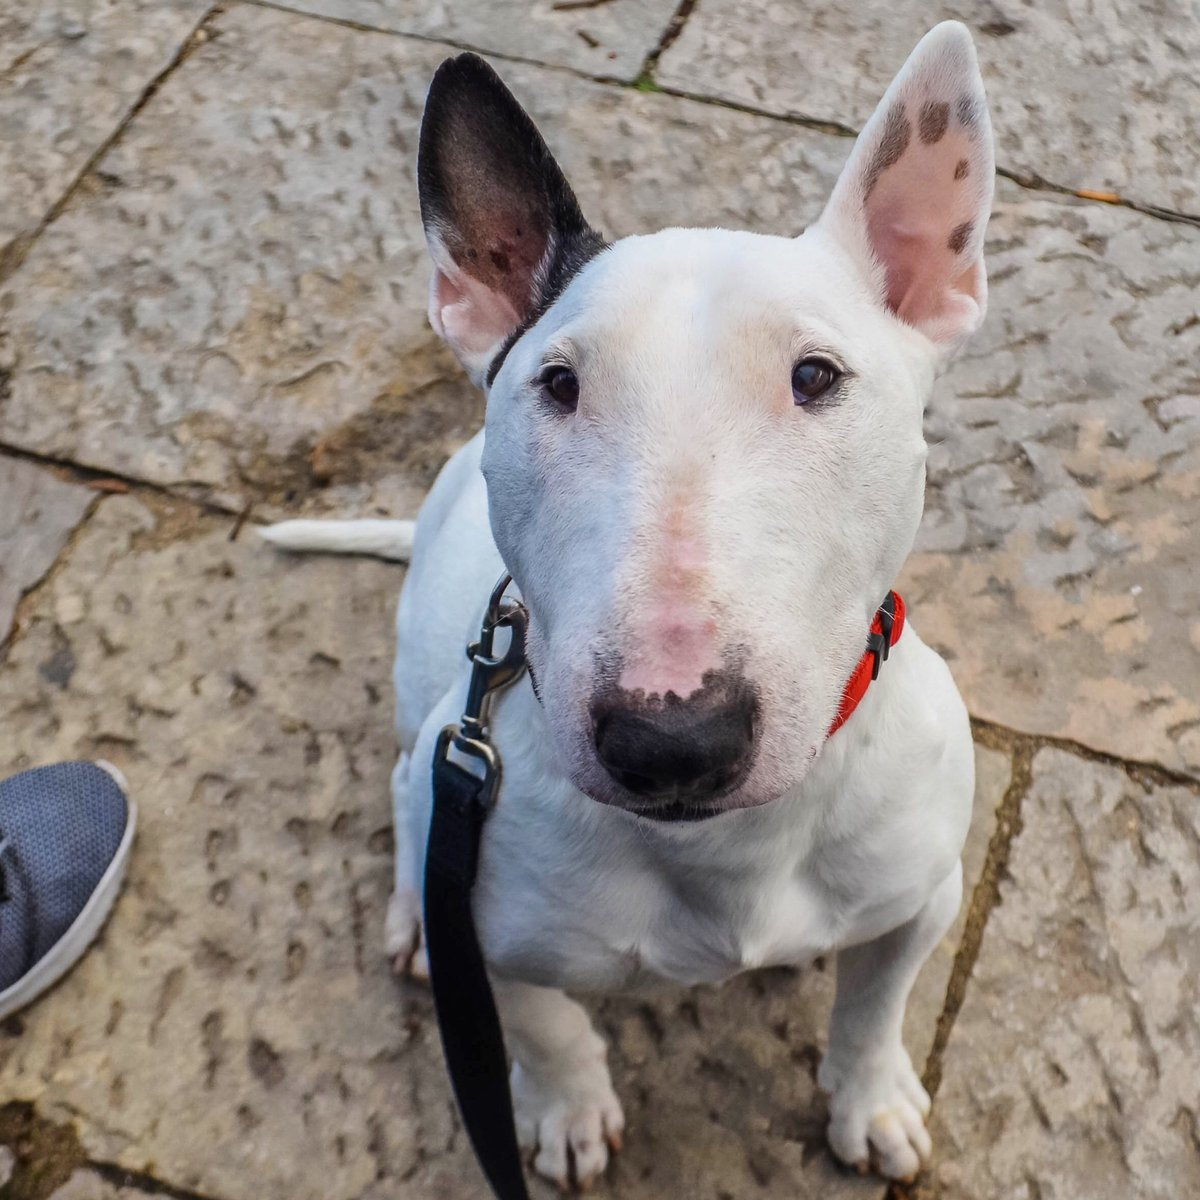 """""""Excuse me, but would you mind sharing a piece of your food with me? """" . . . . #dog #dogs #puppy #puppers #dogsofinstagram #dogsoftwitter #bullterrier #bullies #dogtreats #dogtravel #traveldog<br>http://pic.twitter.com/dGfz0Ptt3U"""